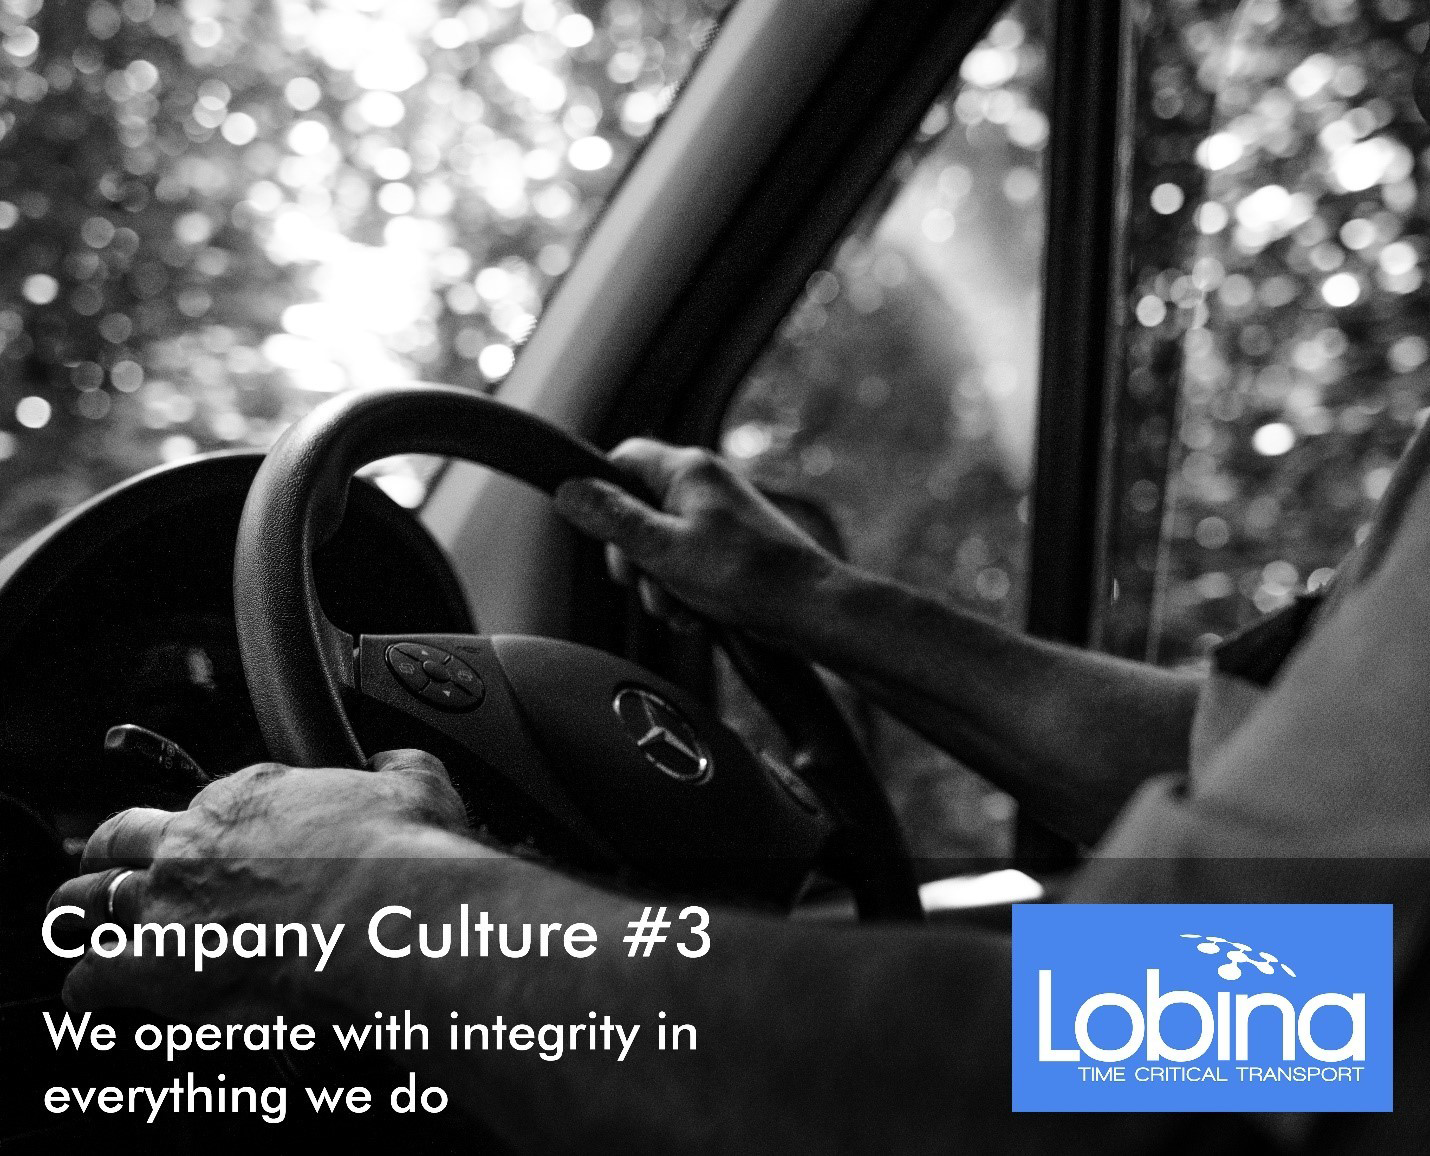 Lobina-transport-company-culture-3-integrity